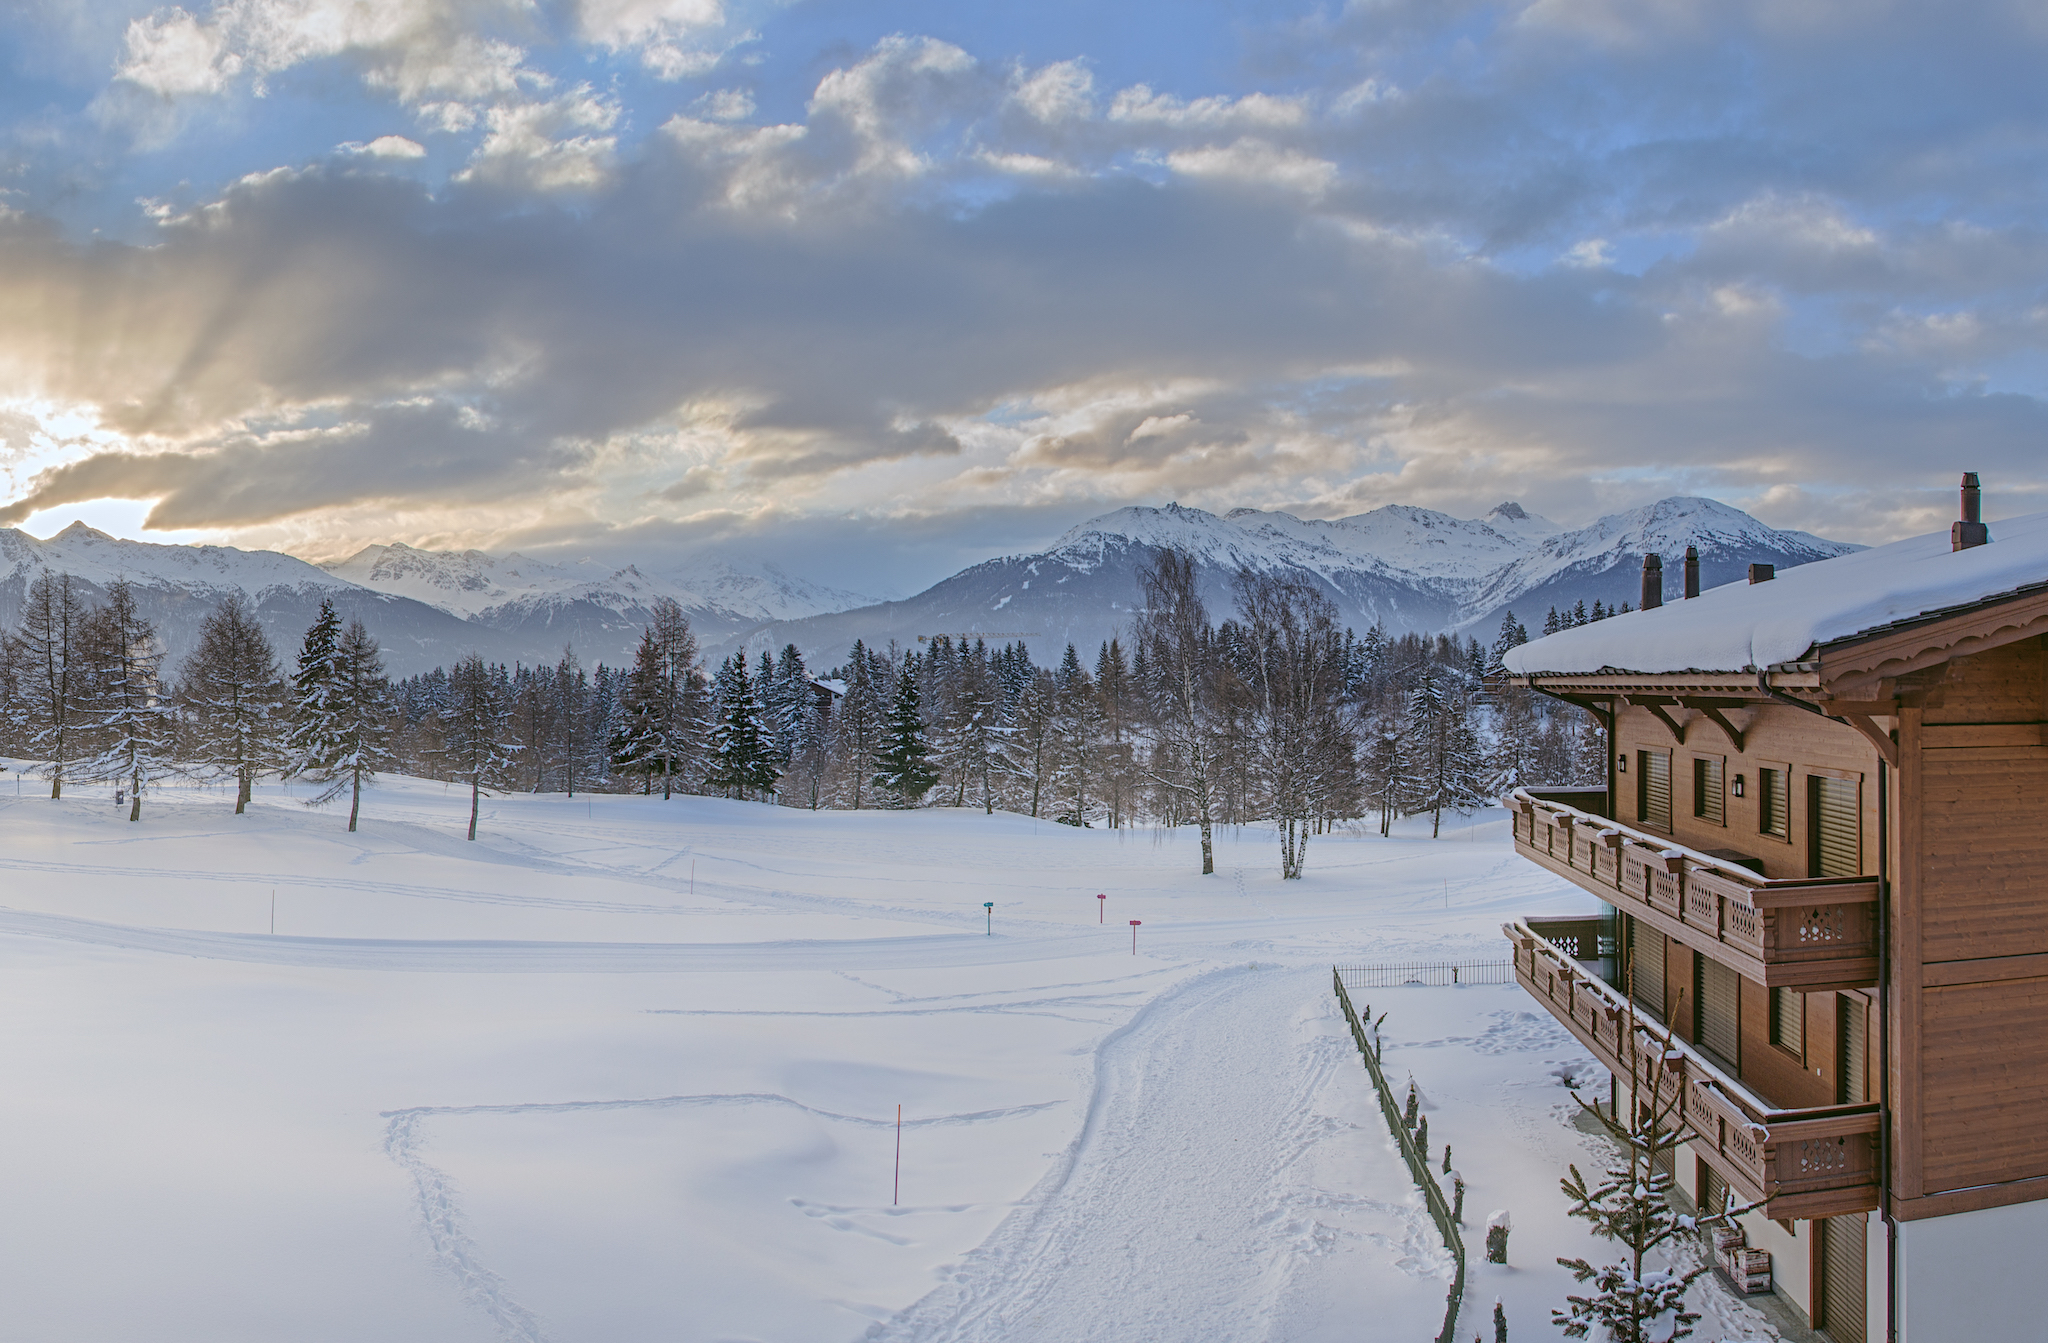 Guarda Golf Hôtel & Résidence, Crans-Montana, for Swiss Tourism Winter Staycation advertorial